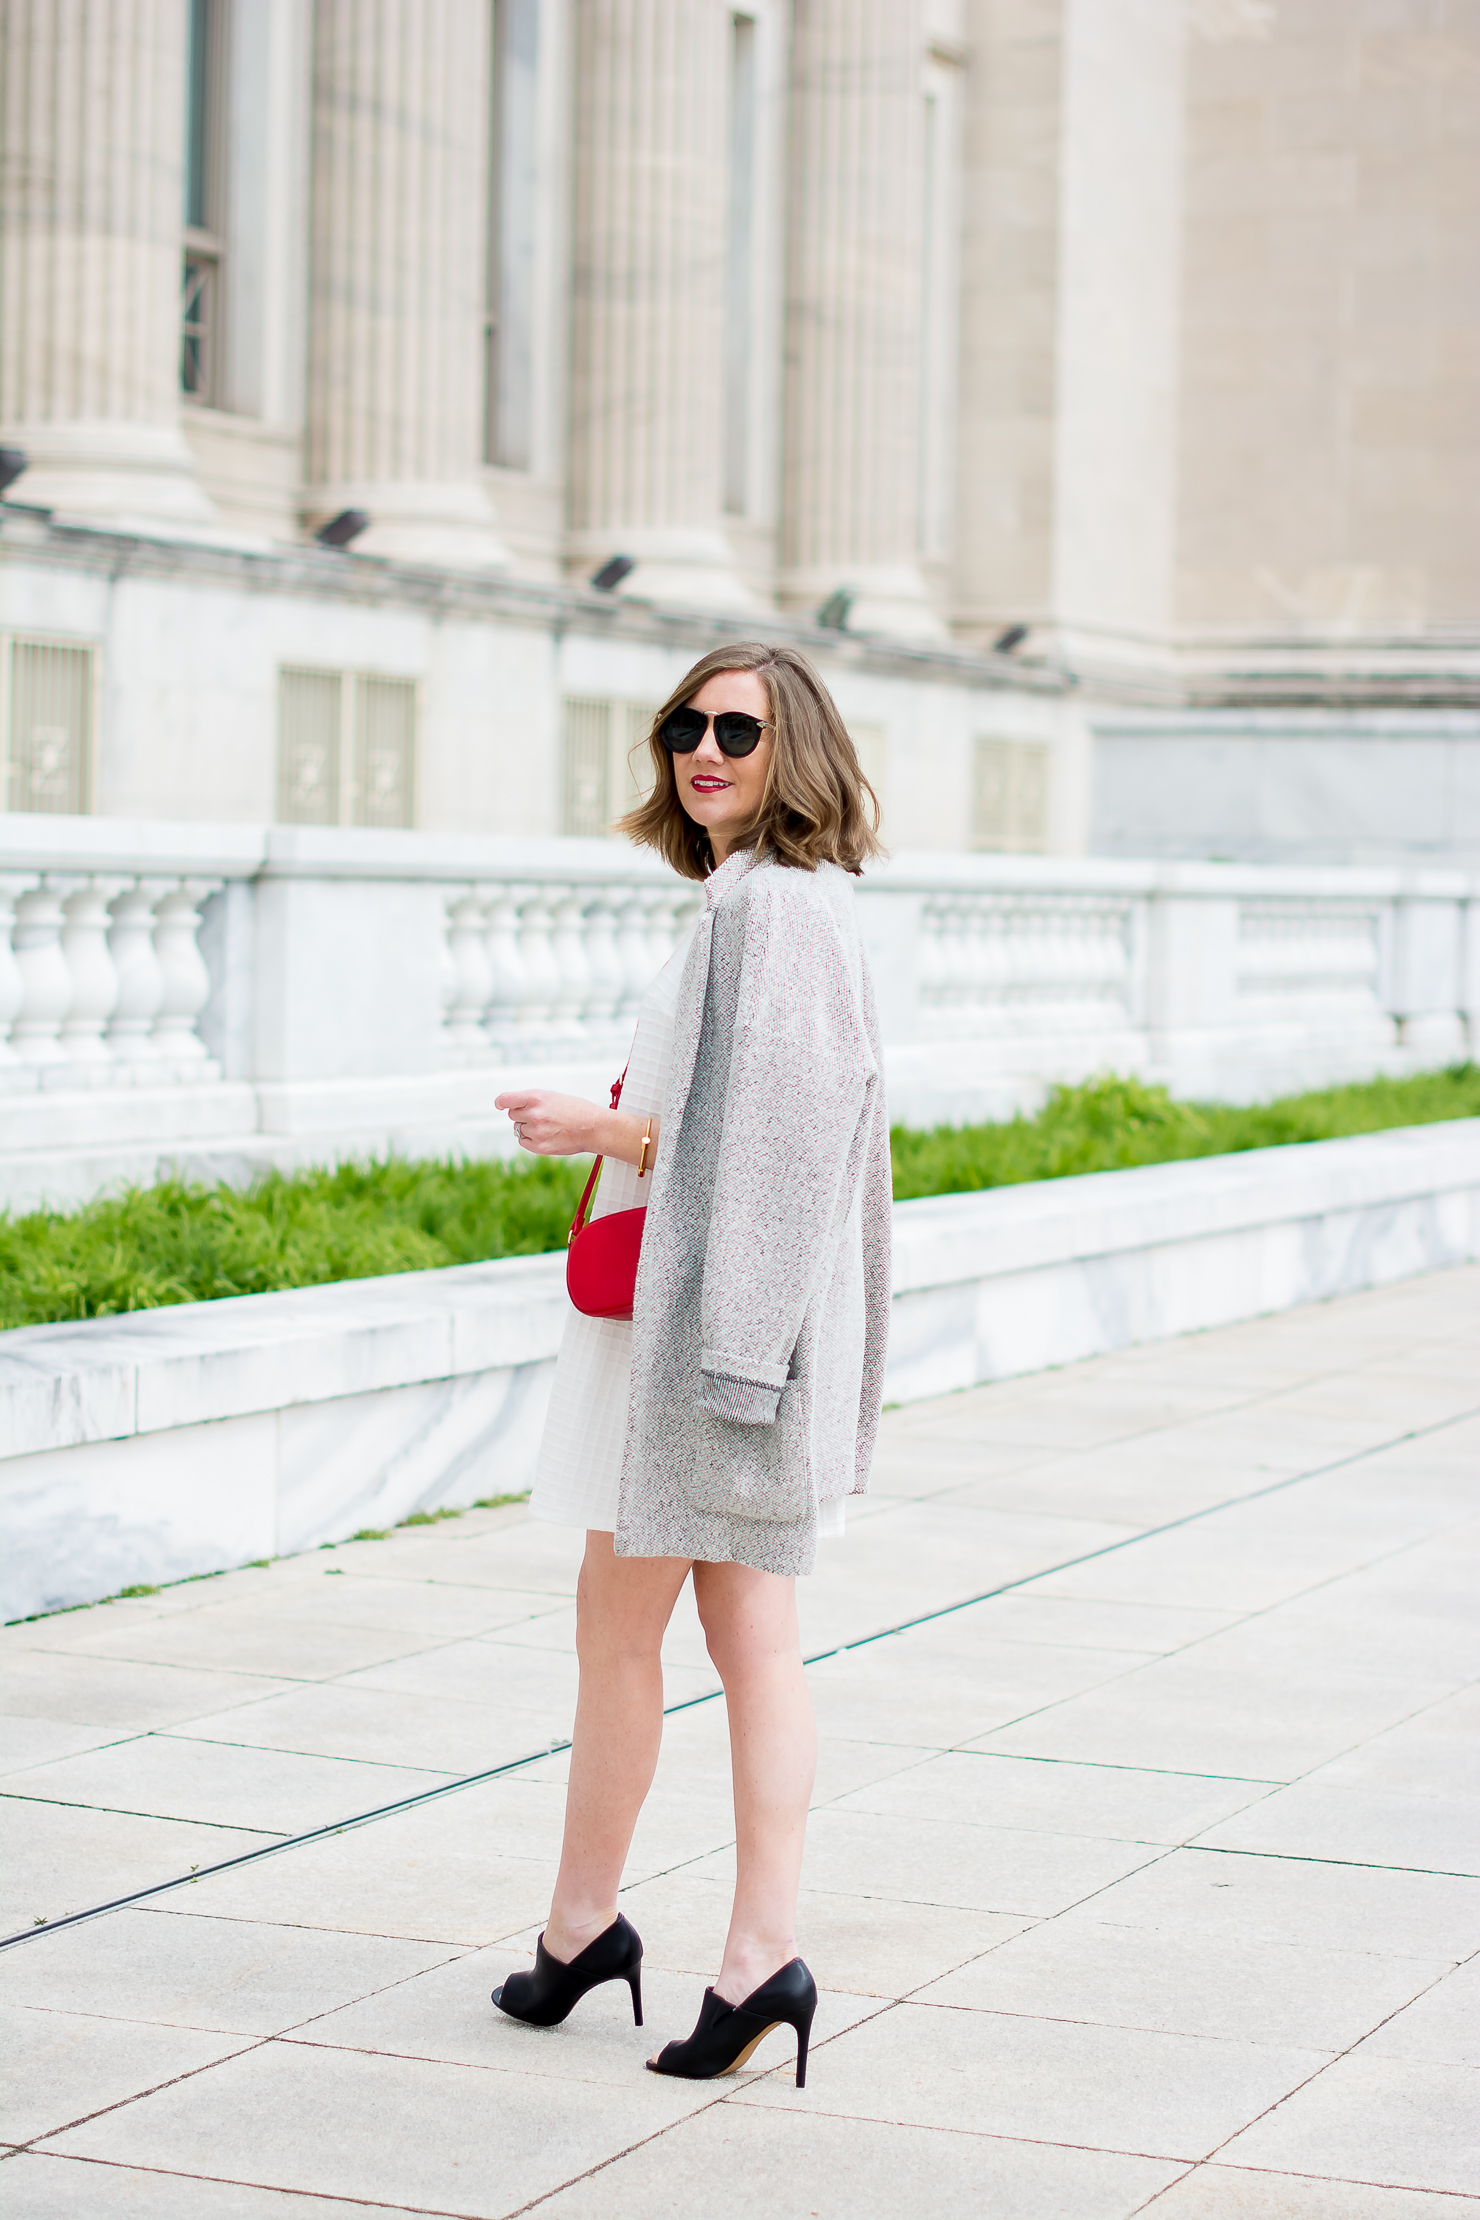 asos-textured-shift-dress-forever-21-marled-black-and-white-overcoat-black-peep-toe-booties-forever-21-red-crossbody-gucci-look-for-less-ditto-endless-eyewear